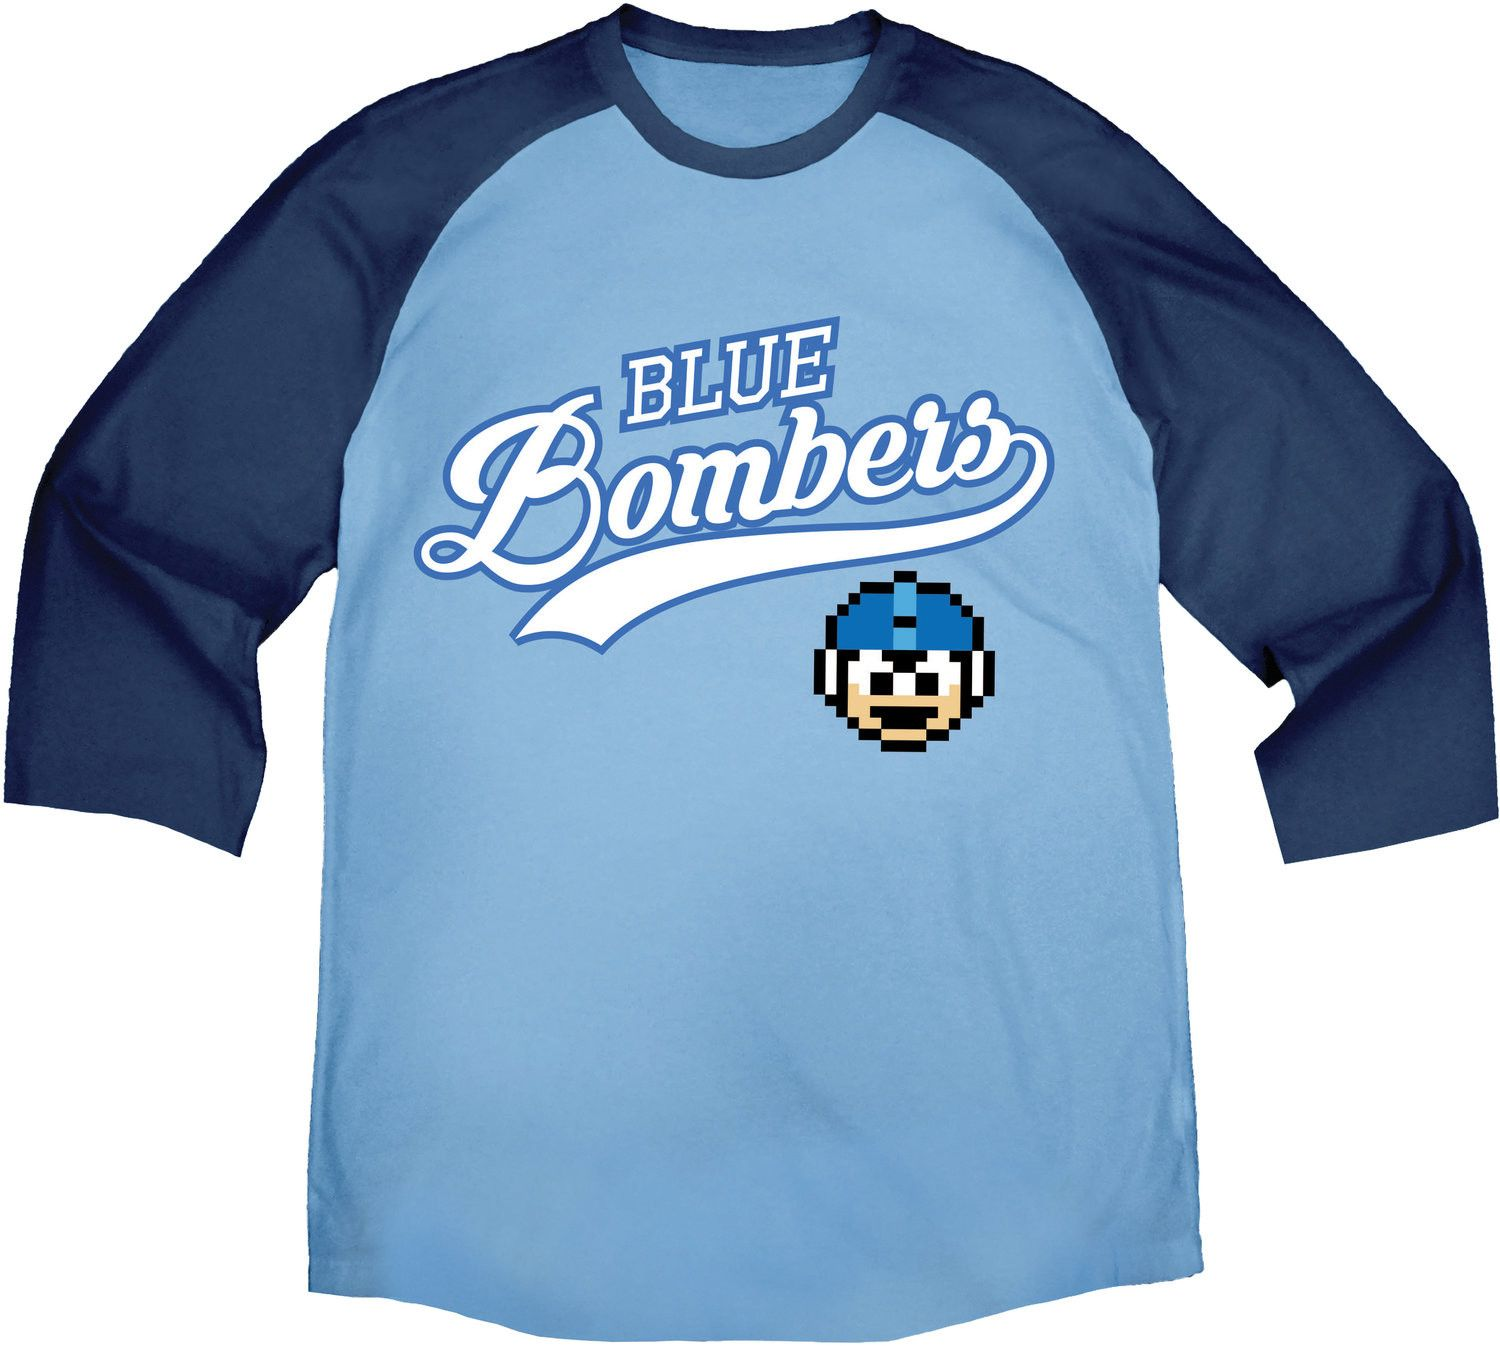 Capcom Mega Man Blue Bomber Blue Baseball Shirt 2X-Large